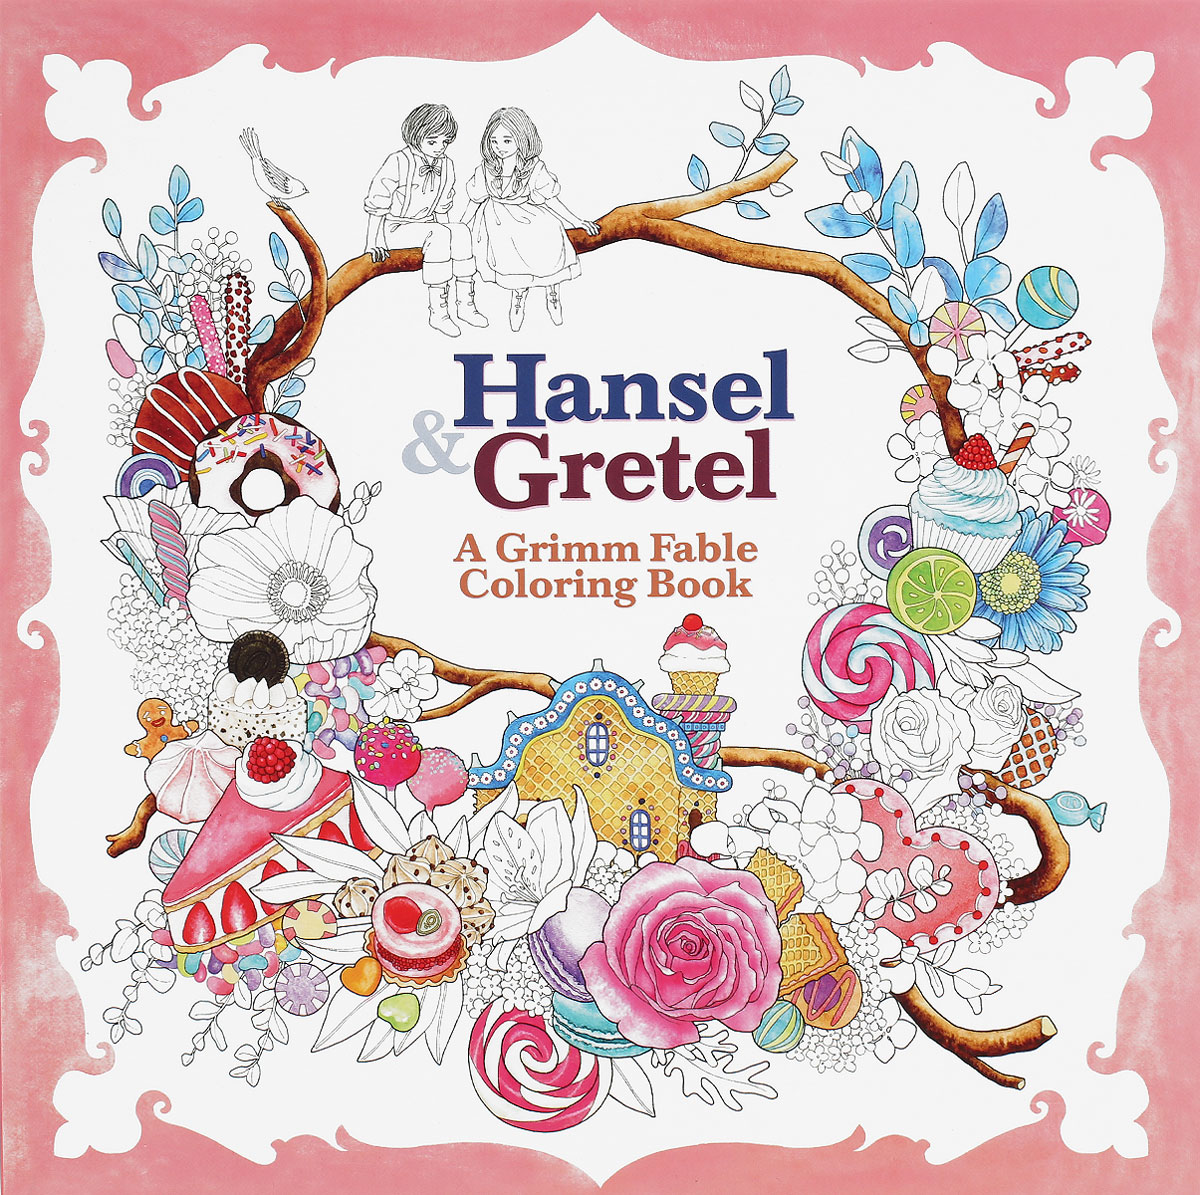 Hansel & Gretel: A Grimm Fable Coloring Book fantastic cities a coloring book of amazing places real and imagined